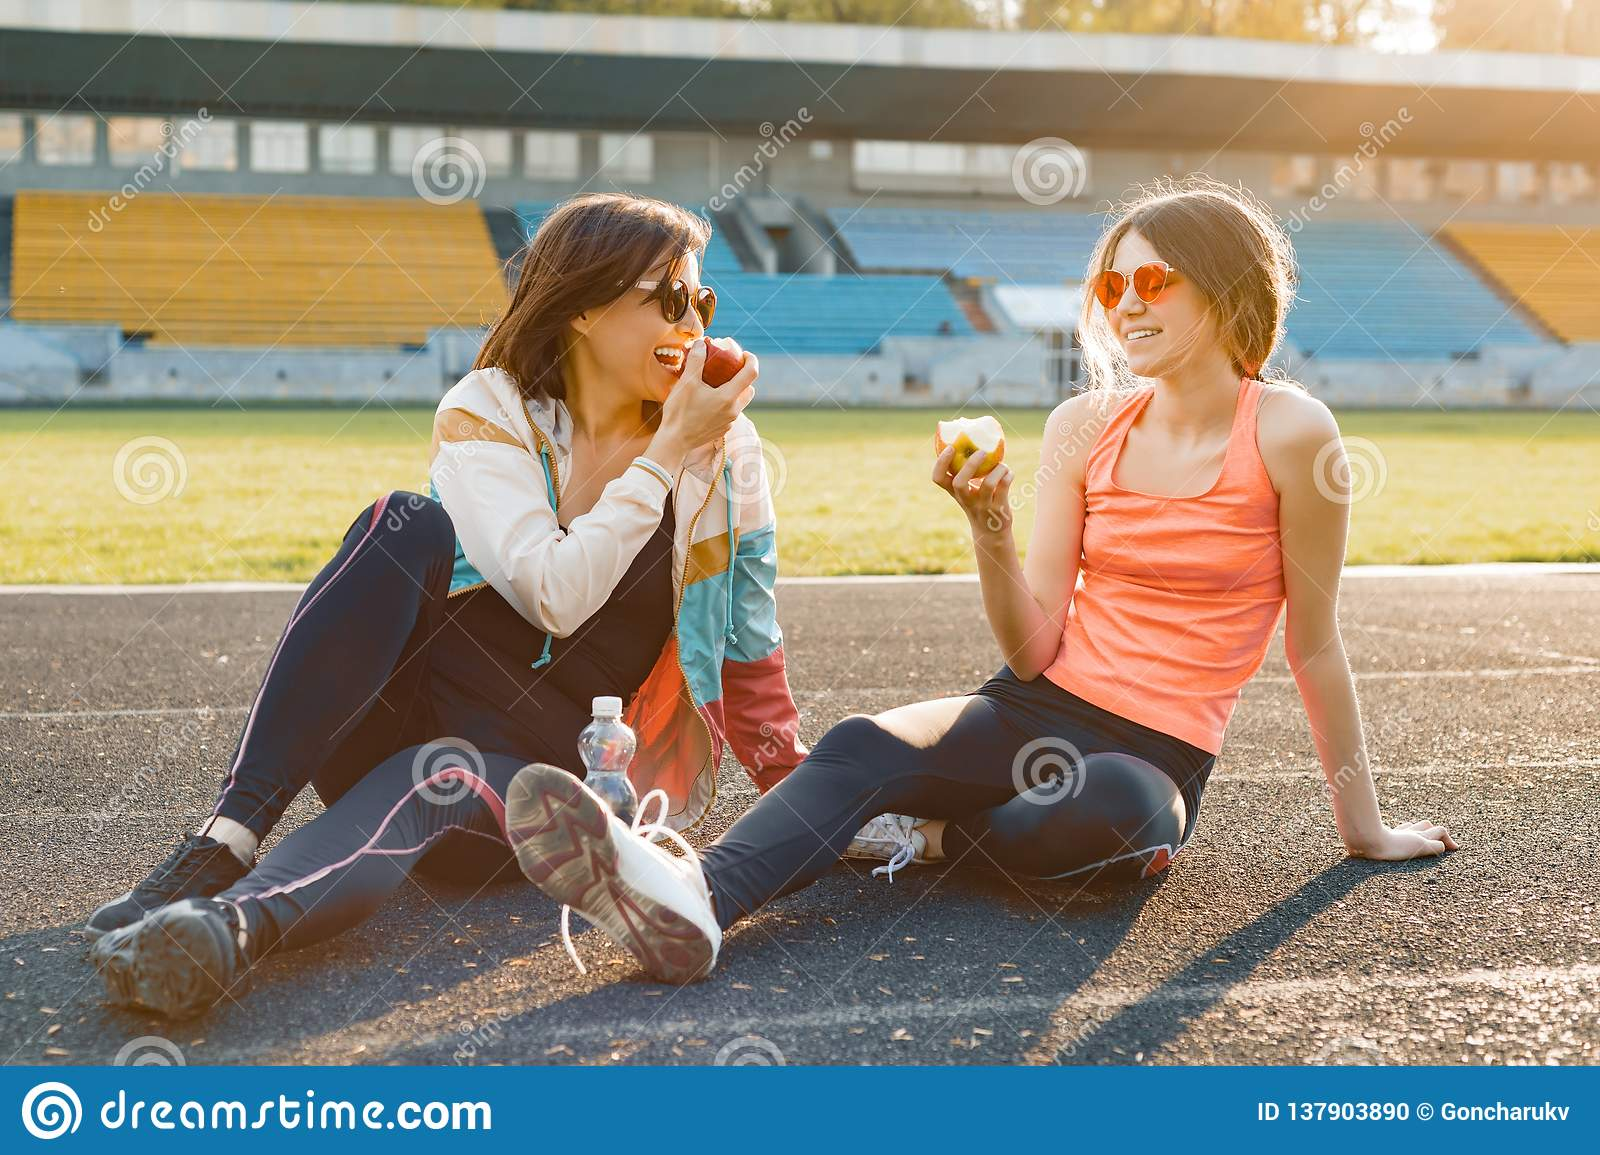 Healthy lifestyle and healthy food concept. Smiling fitness mother and teen daughter together eating apple sitting on stadium